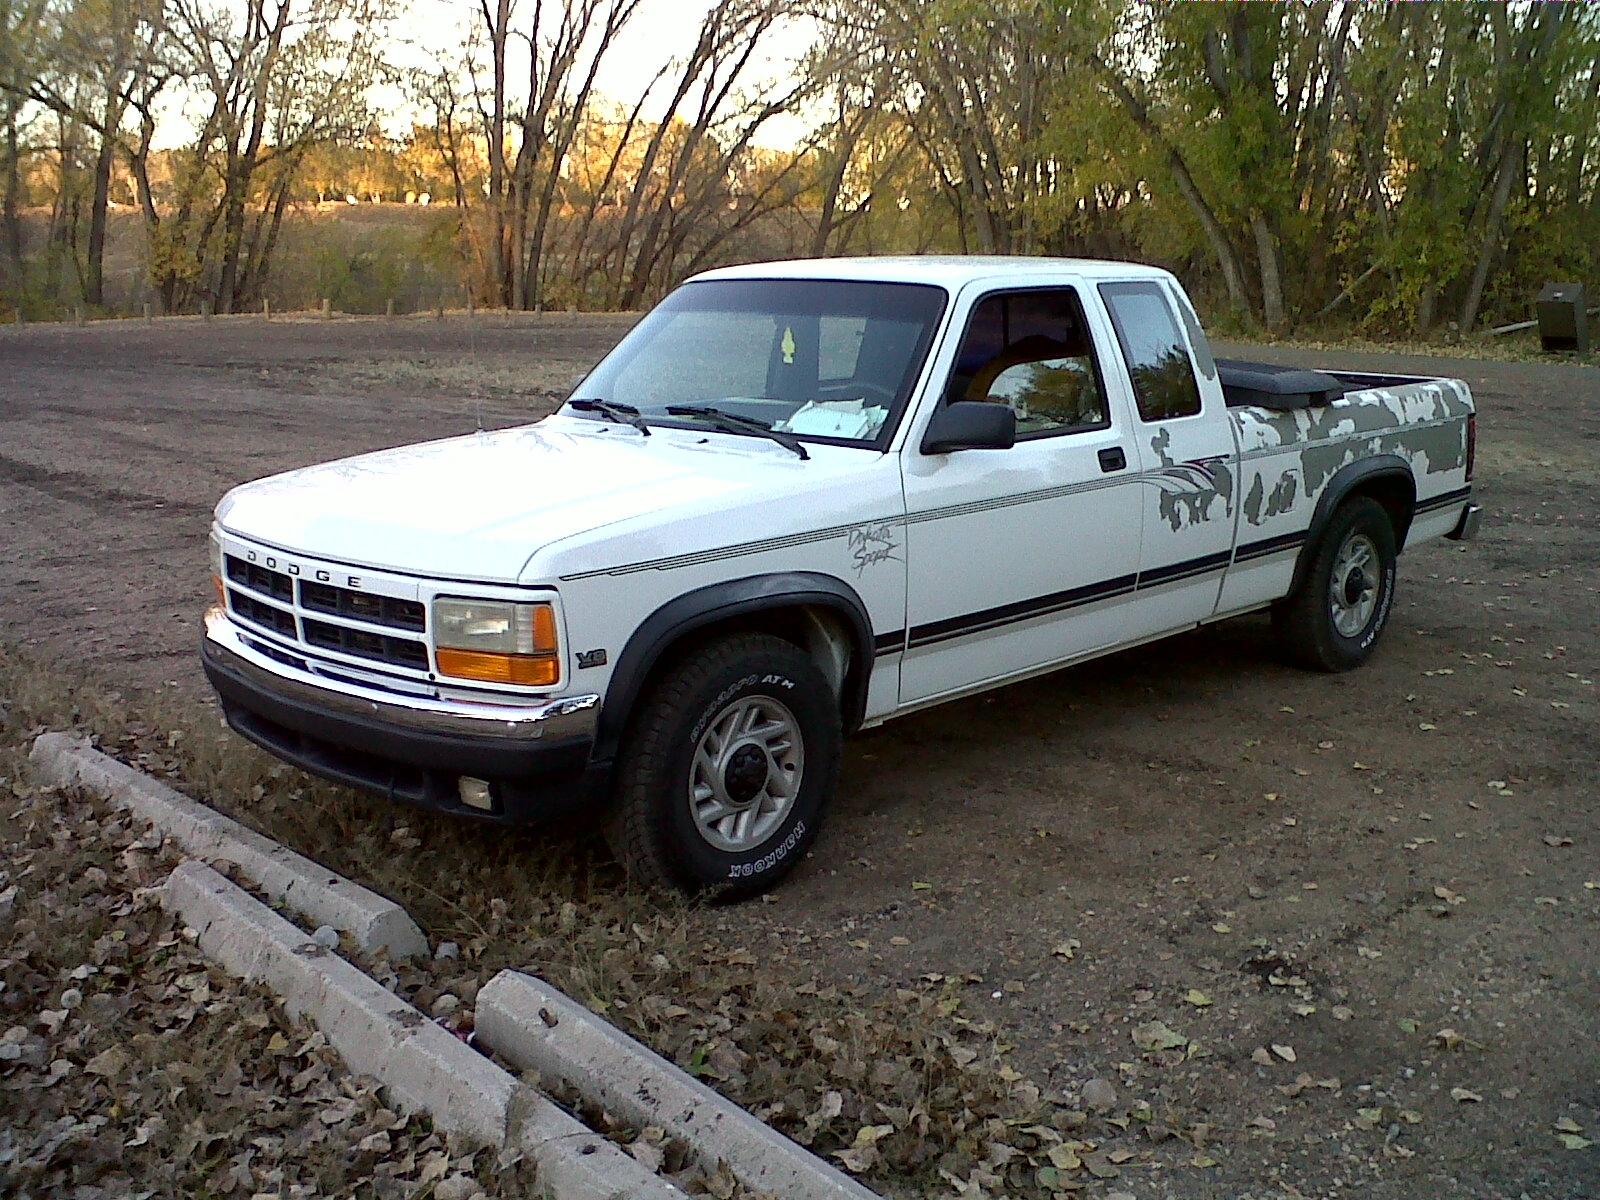 BigCDakota's 1993 Dodge Dakota Club Cab